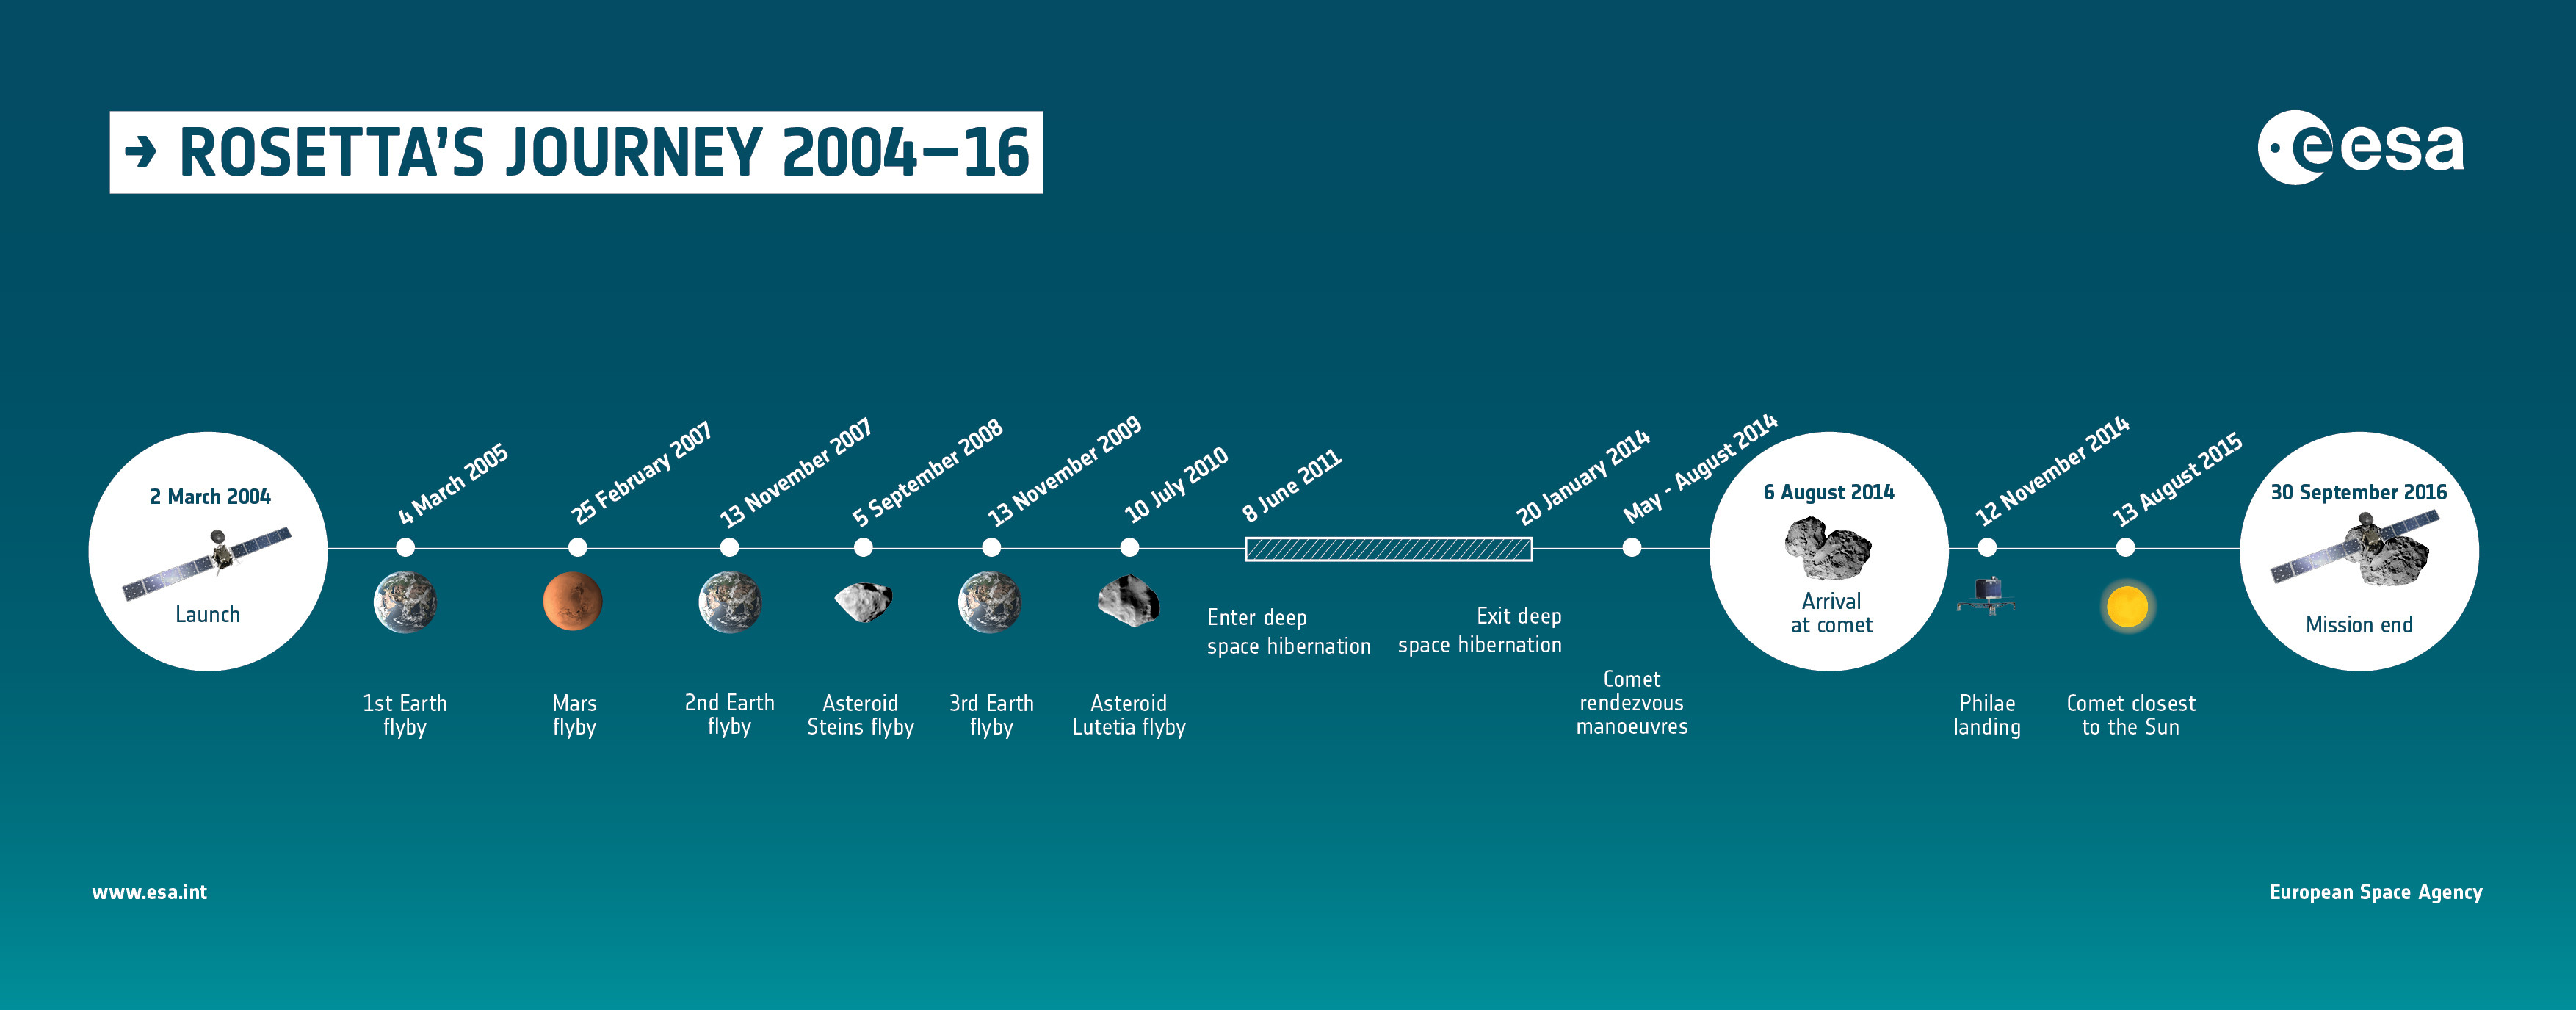 unmanned spacecraft timeline - photo #31